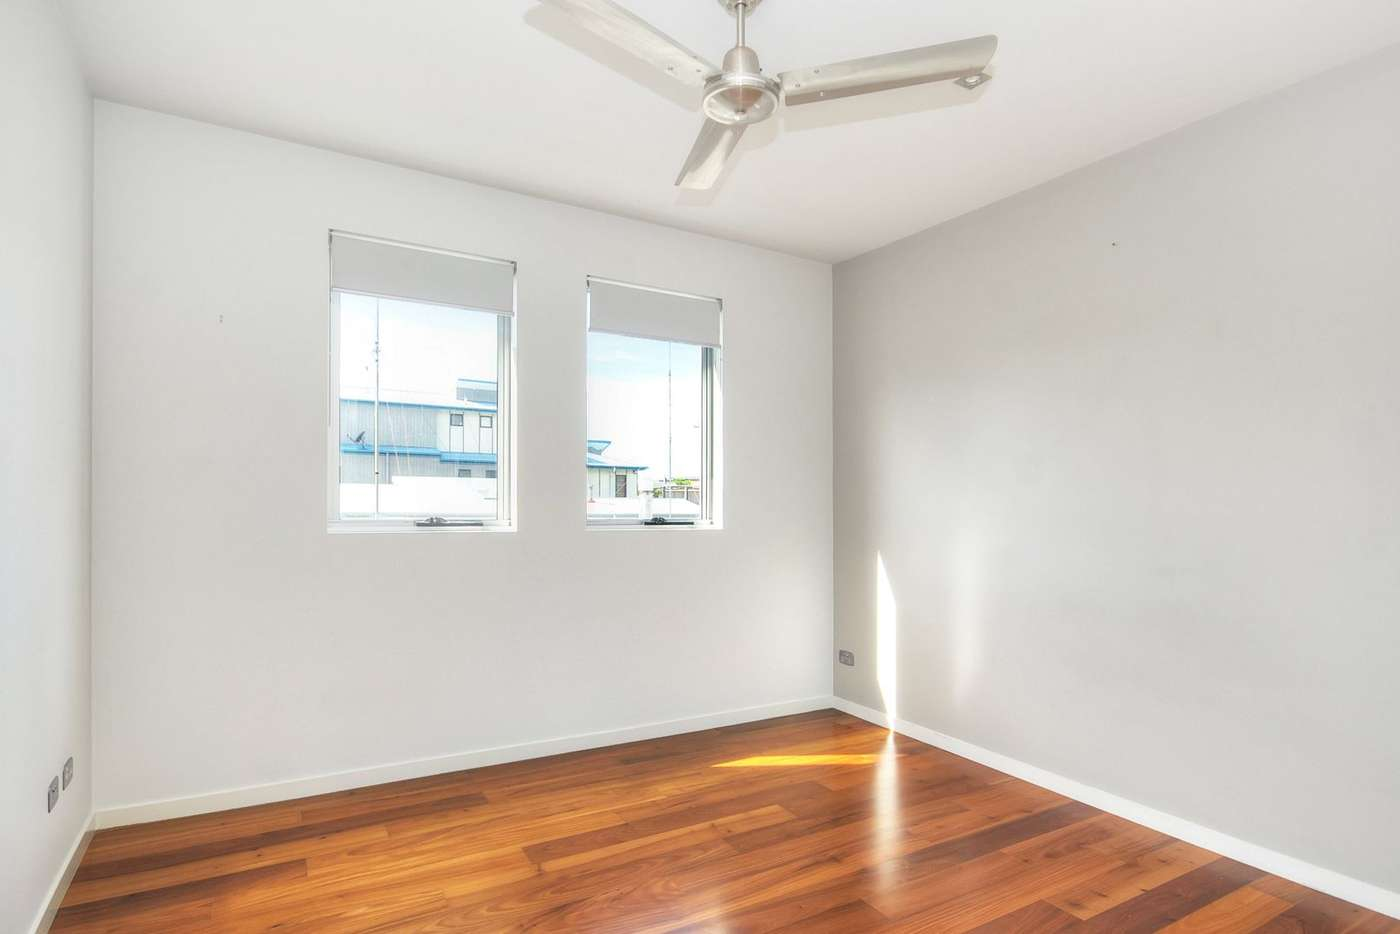 Seventh view of Homely apartment listing, 2/15 Ventura Road, Mermaid Beach QLD 4218